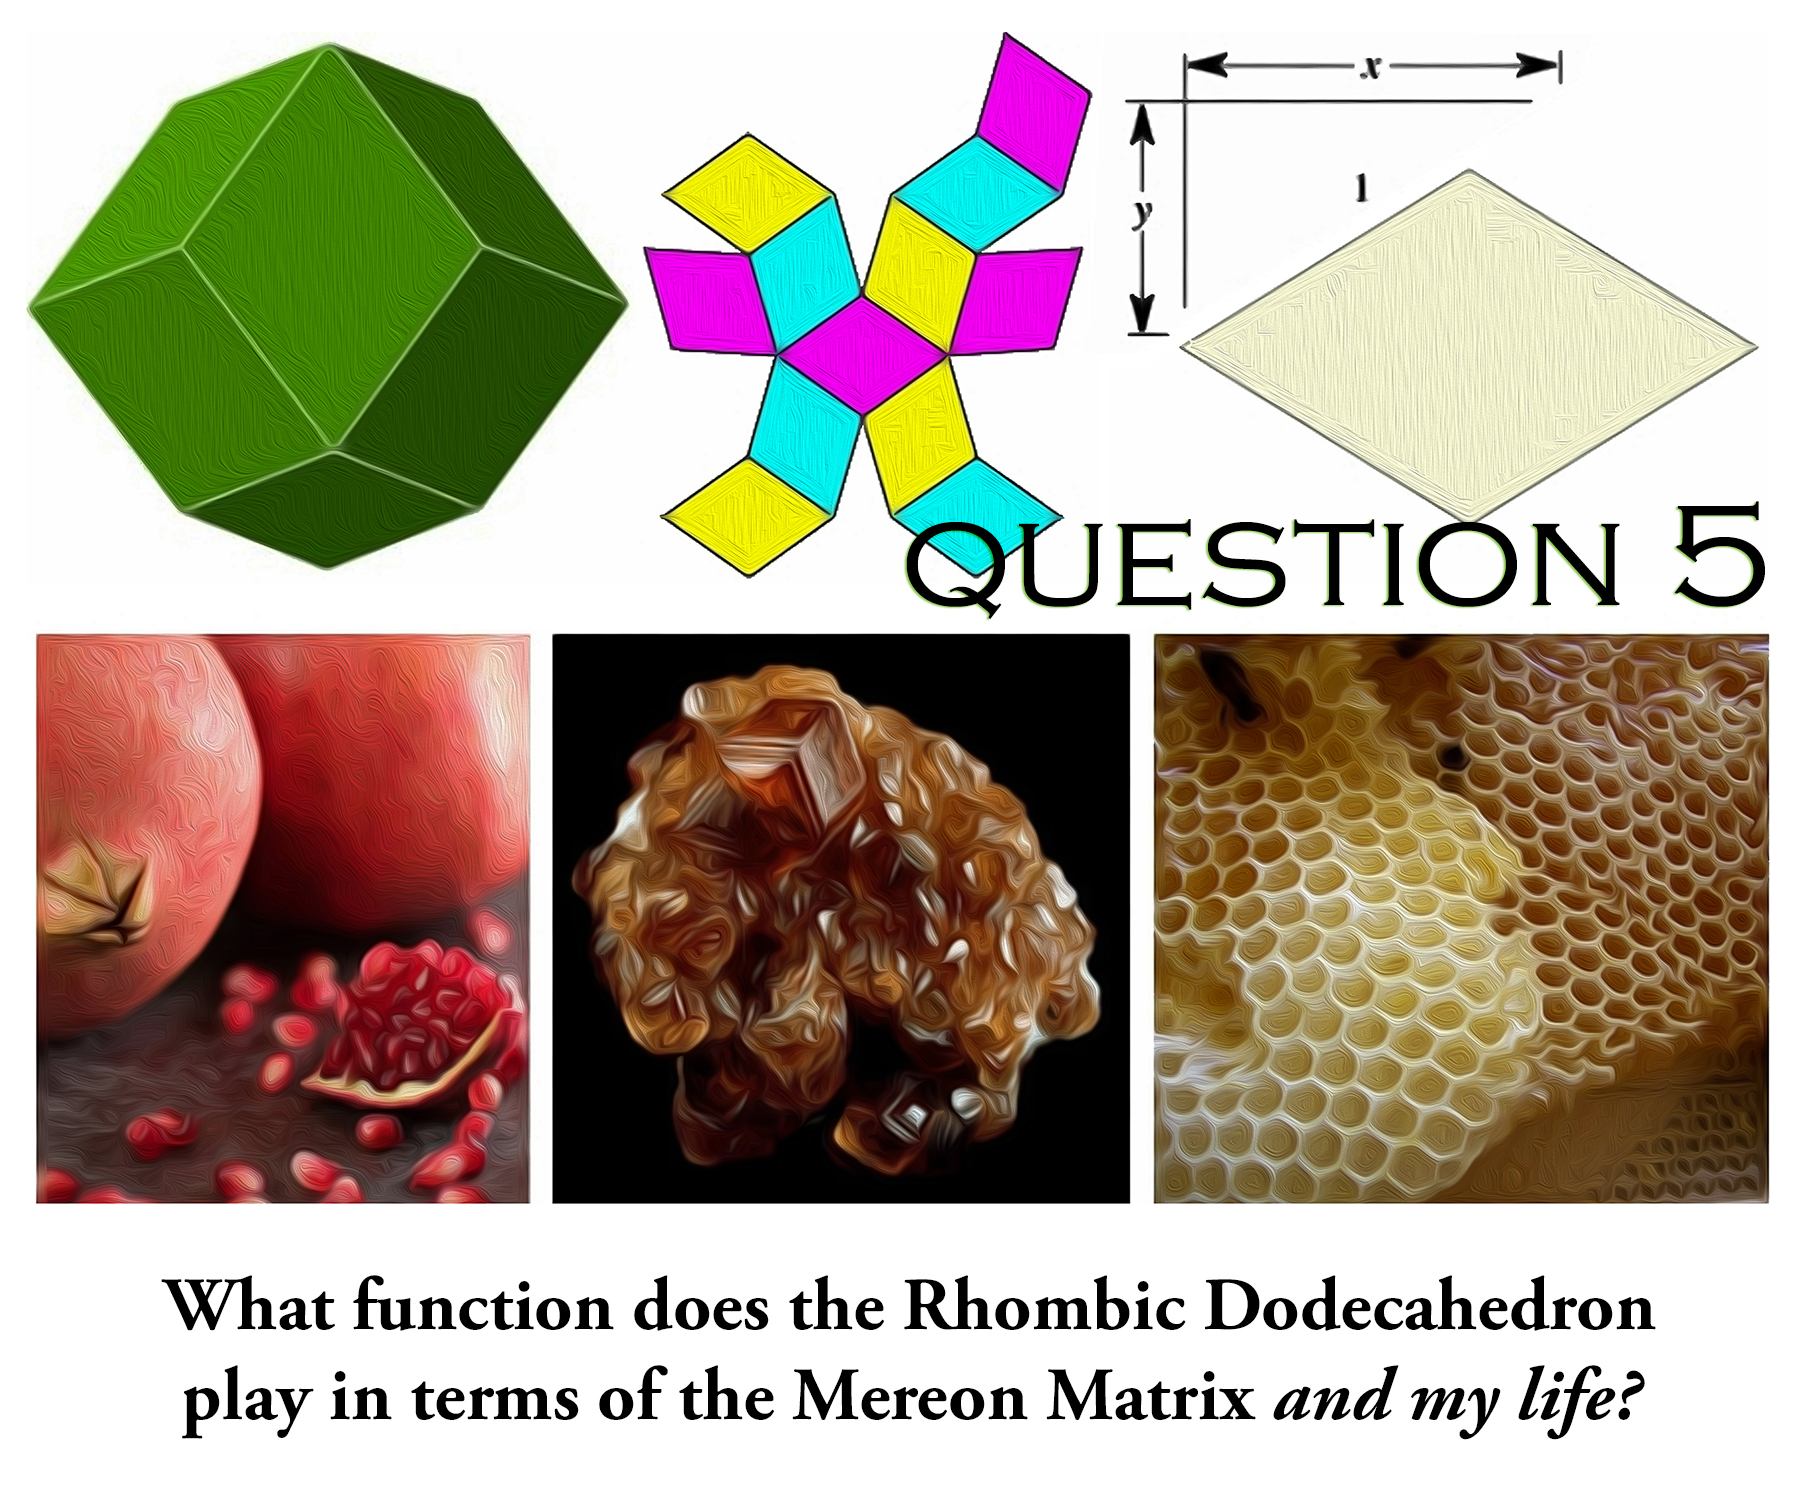 Rhombic Dodecahedron in form and nature